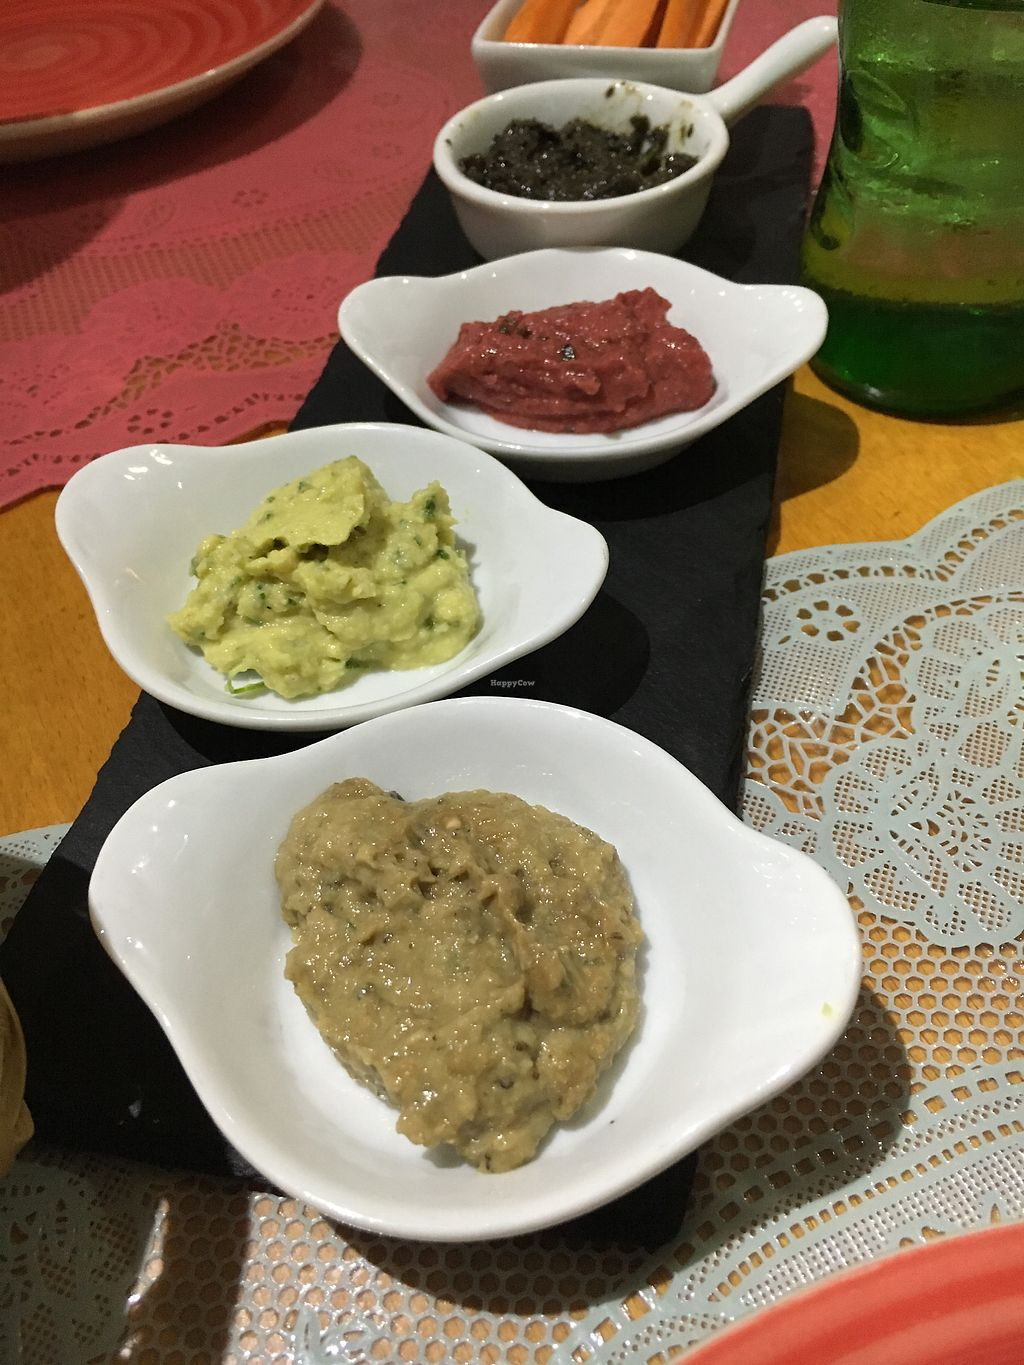 """Photo of Boca Xica  by <a href=""""/members/profile/hack_man"""">hack_man</a> <br/>Hummus dip starters  <br/> September 14, 2017  - <a href='/contact/abuse/image/99722/304520'>Report</a>"""